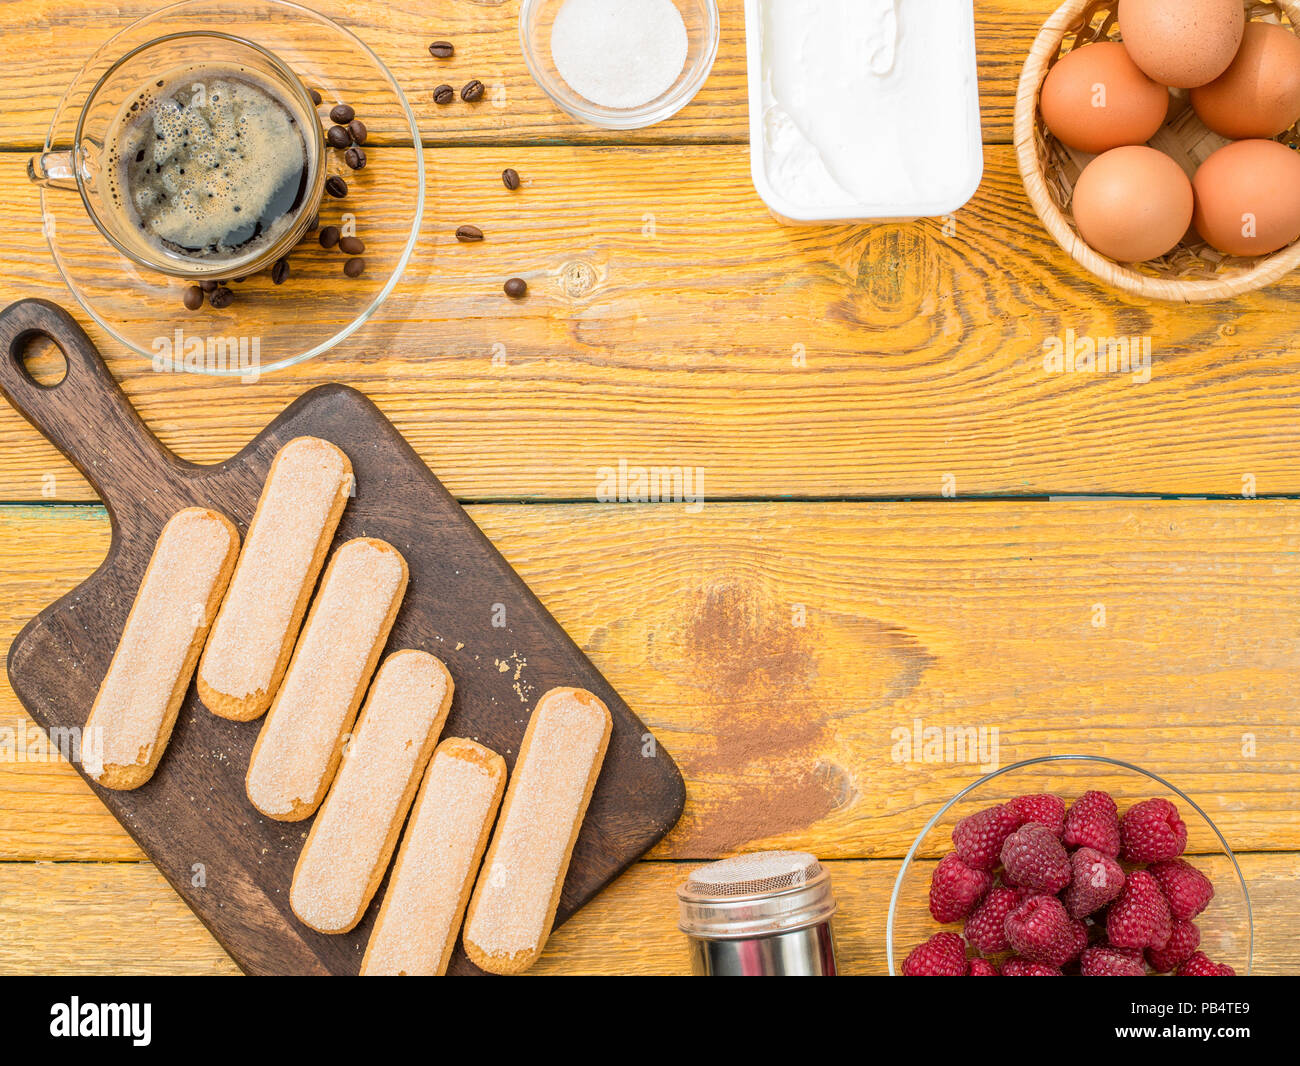 Photo on top of table with biscuits, eggs, raspberries - Stock Image